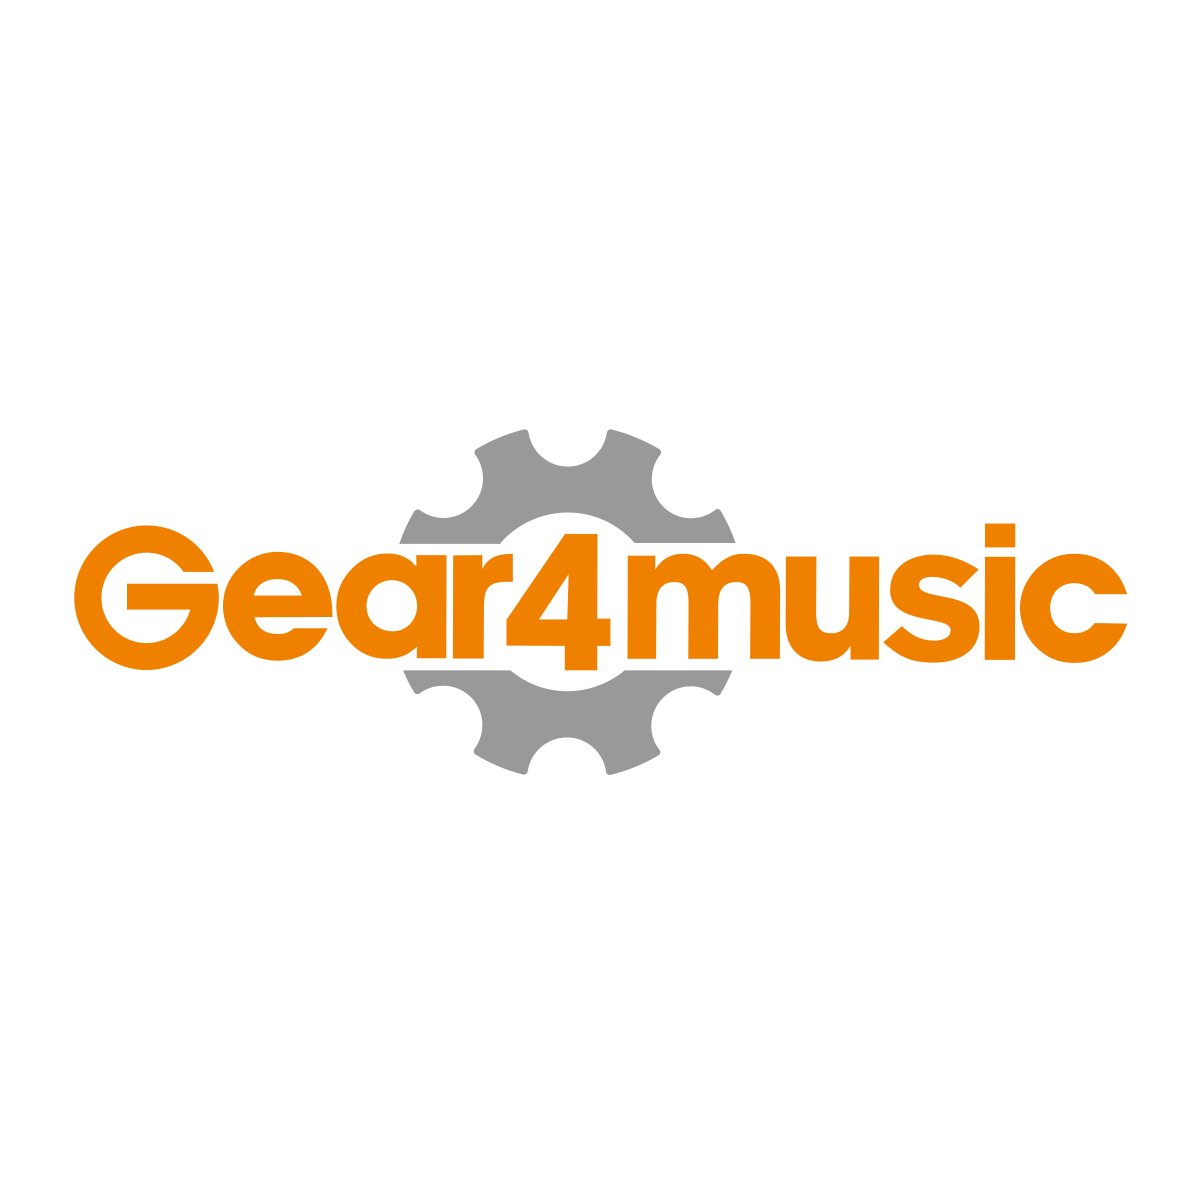 Funda de Rack 3U de 19 Pulgadas de Gear4music